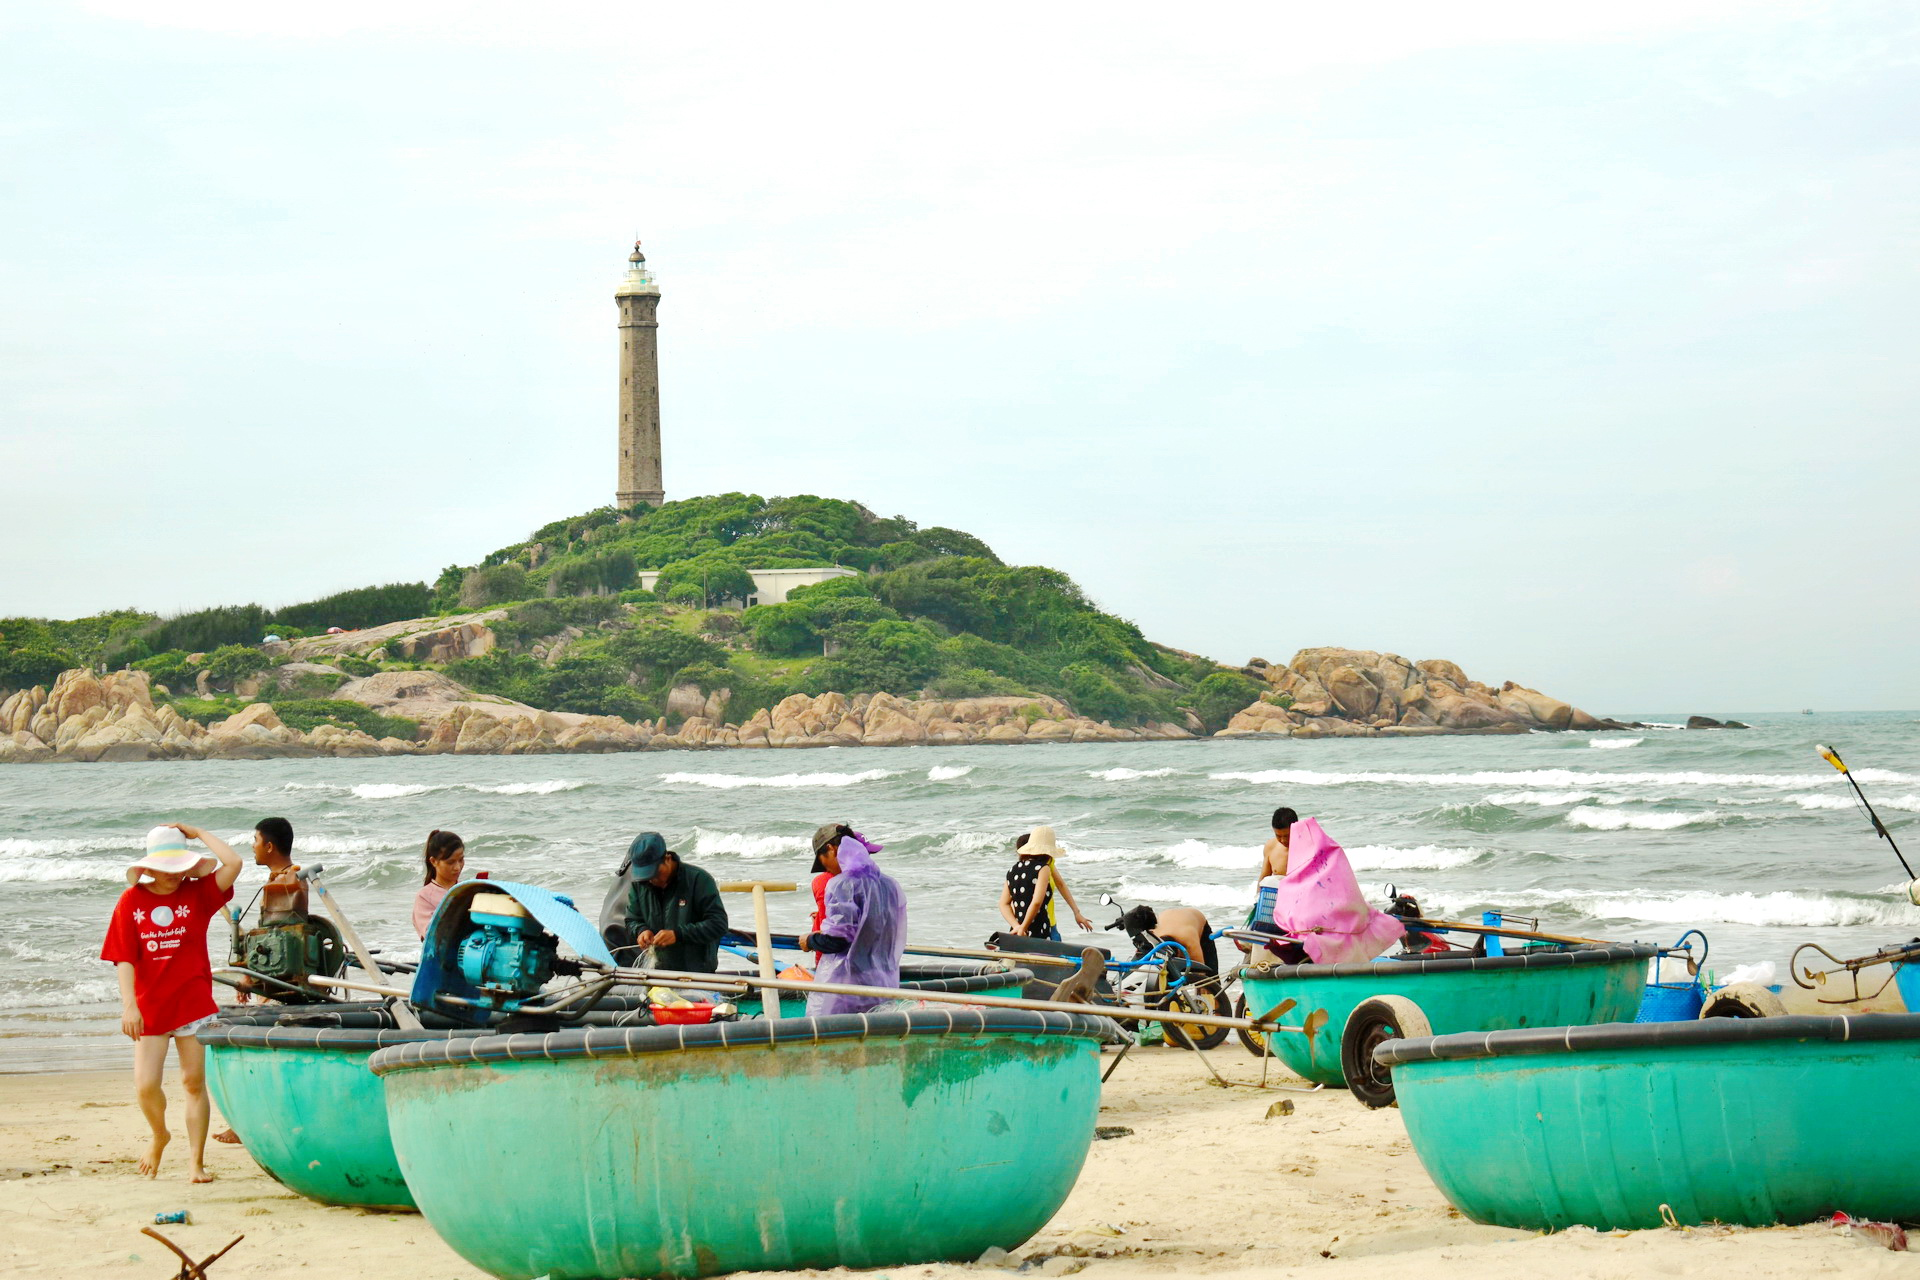 Fishermen and conical boats gather at a fishing village at the Ke Ga Beach in Binh Thuan Province, Vietnam. Photo: Tuan Son / Tuoi Tre News